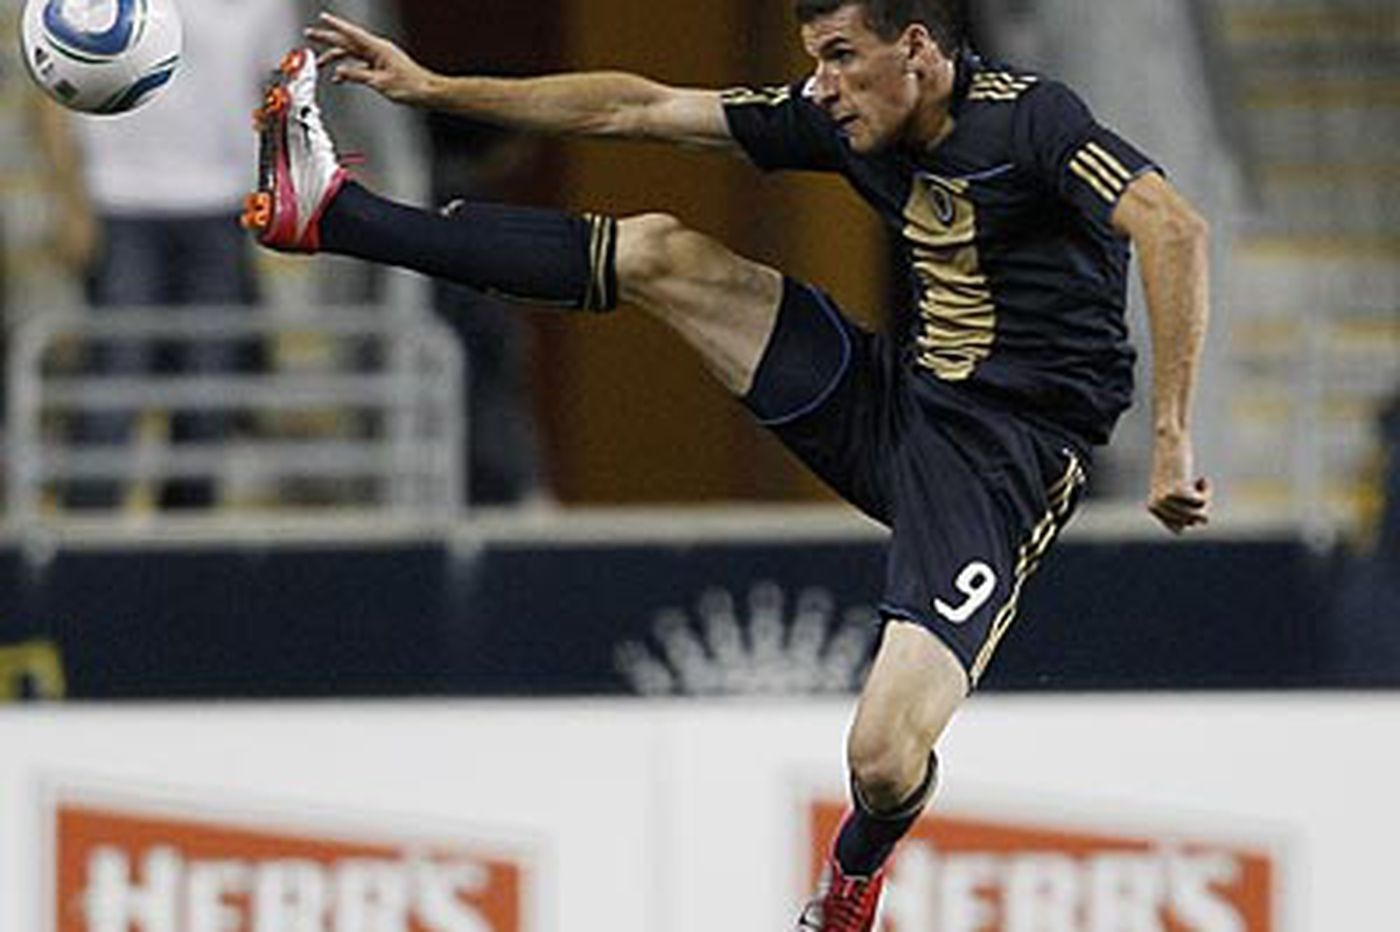 When will Union's Le Toux score from open play?